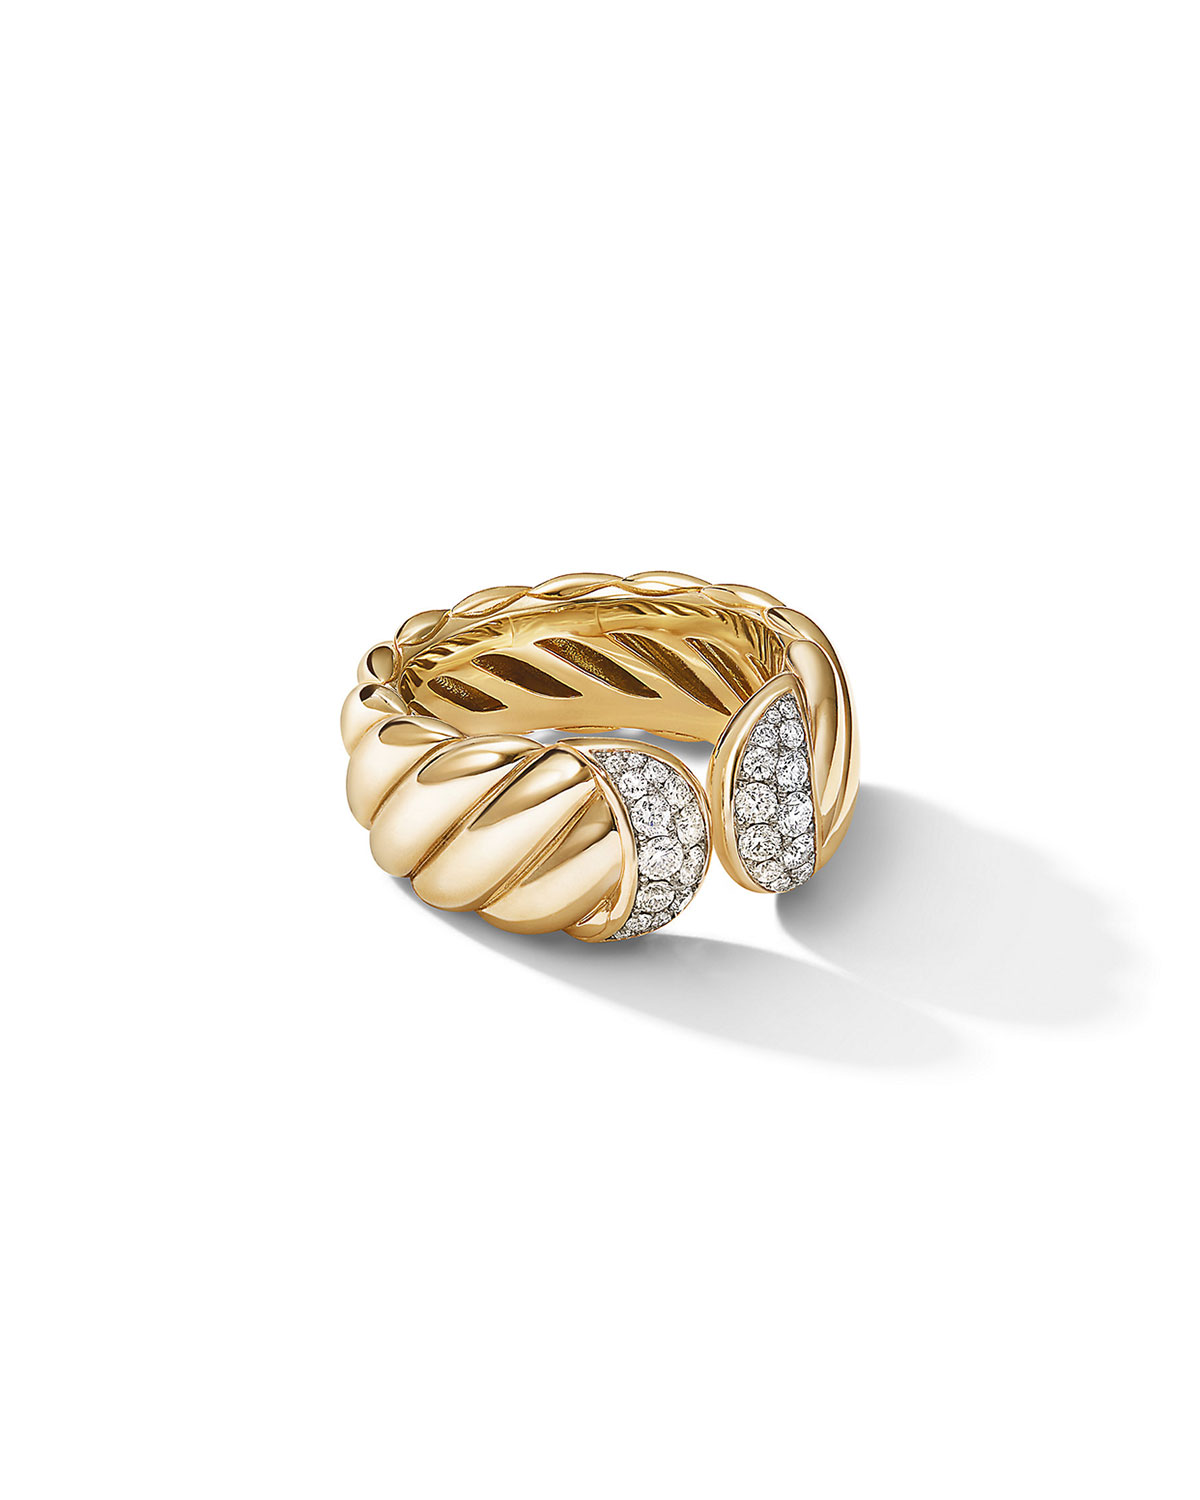 David Yurman Rings SCULPTED CABLE RING IN 18K YELLOW GOLD WITH PAVE DIAMONDS